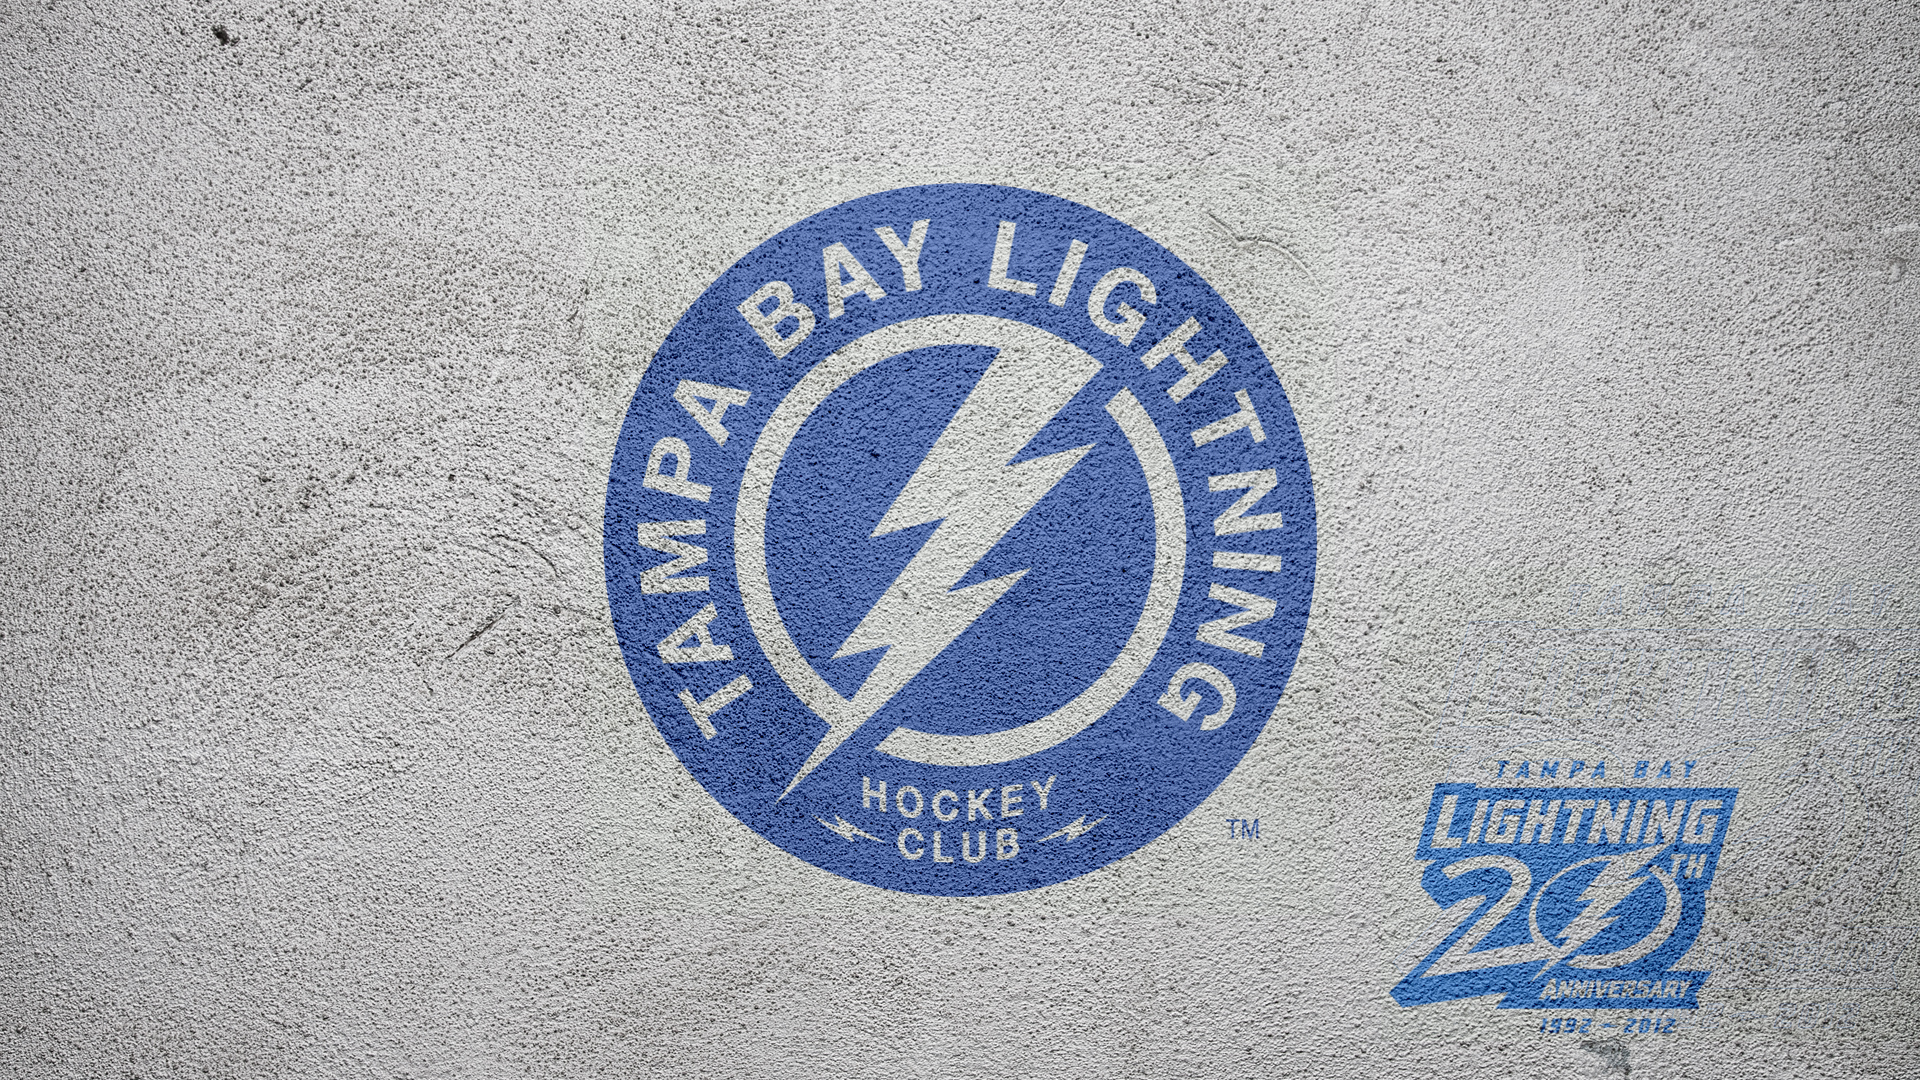 Tampa Bay Lightning NHL Wallpaper by Realyze 1920x1080